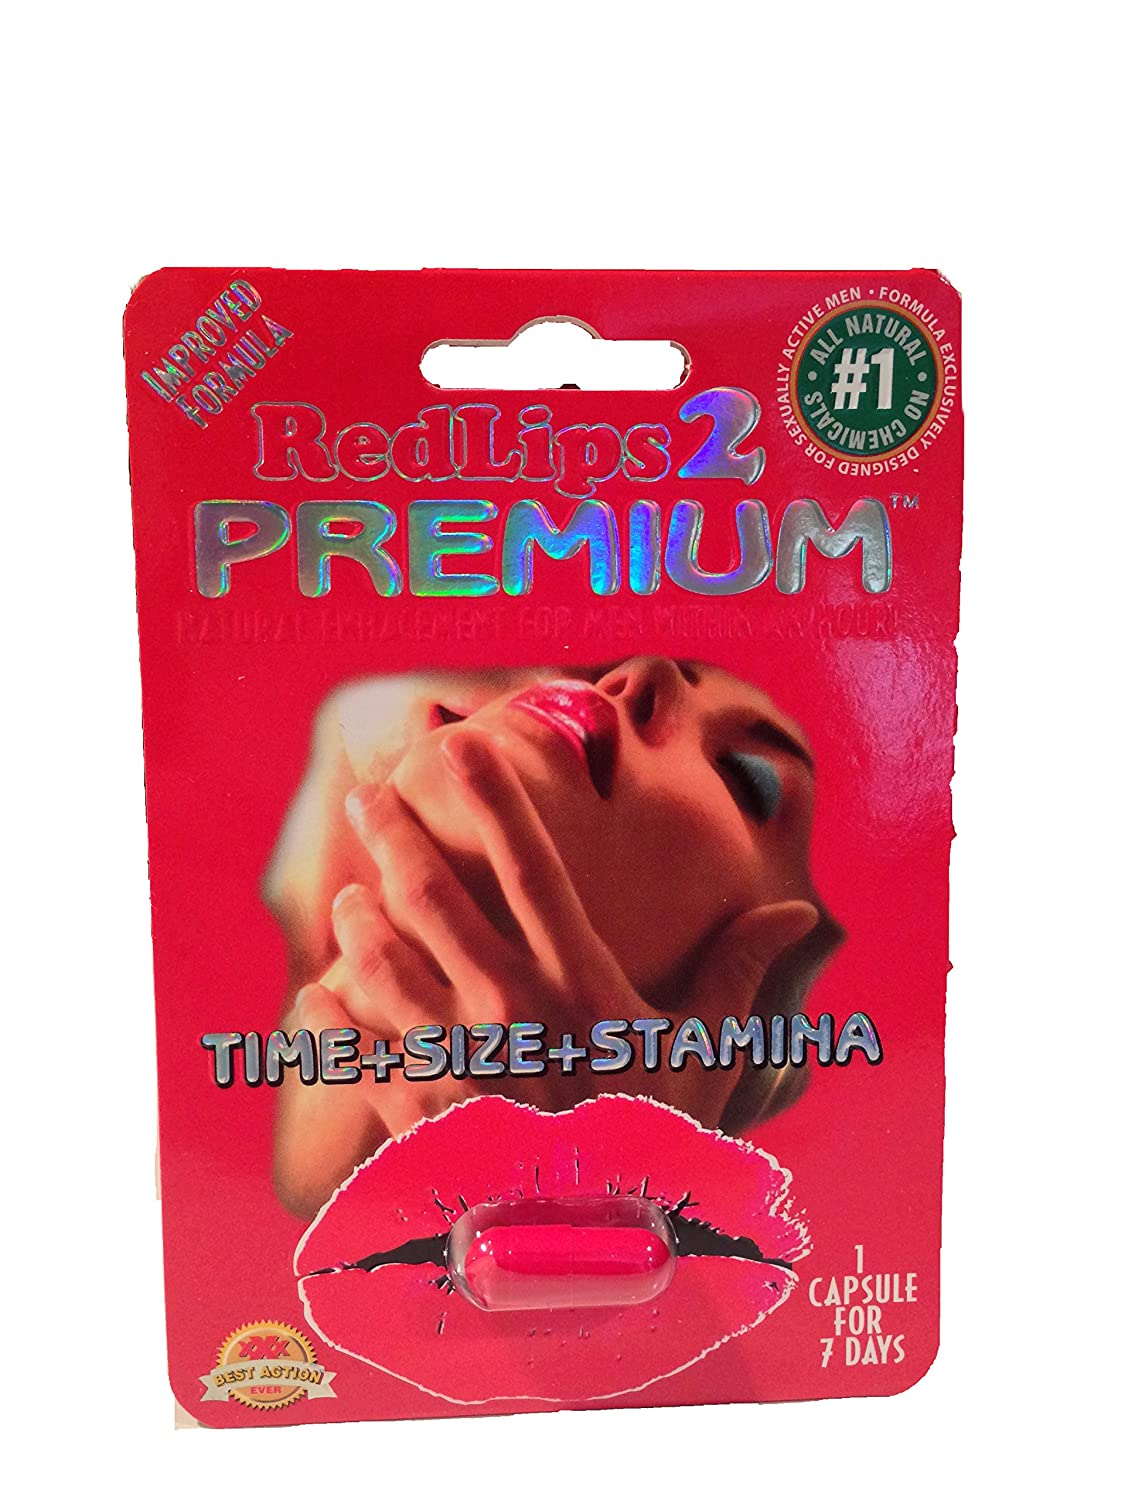 RedLips 2 Premium Improved Formula Male Enhancement Sex Pill 1250mg!- 5 Pills!